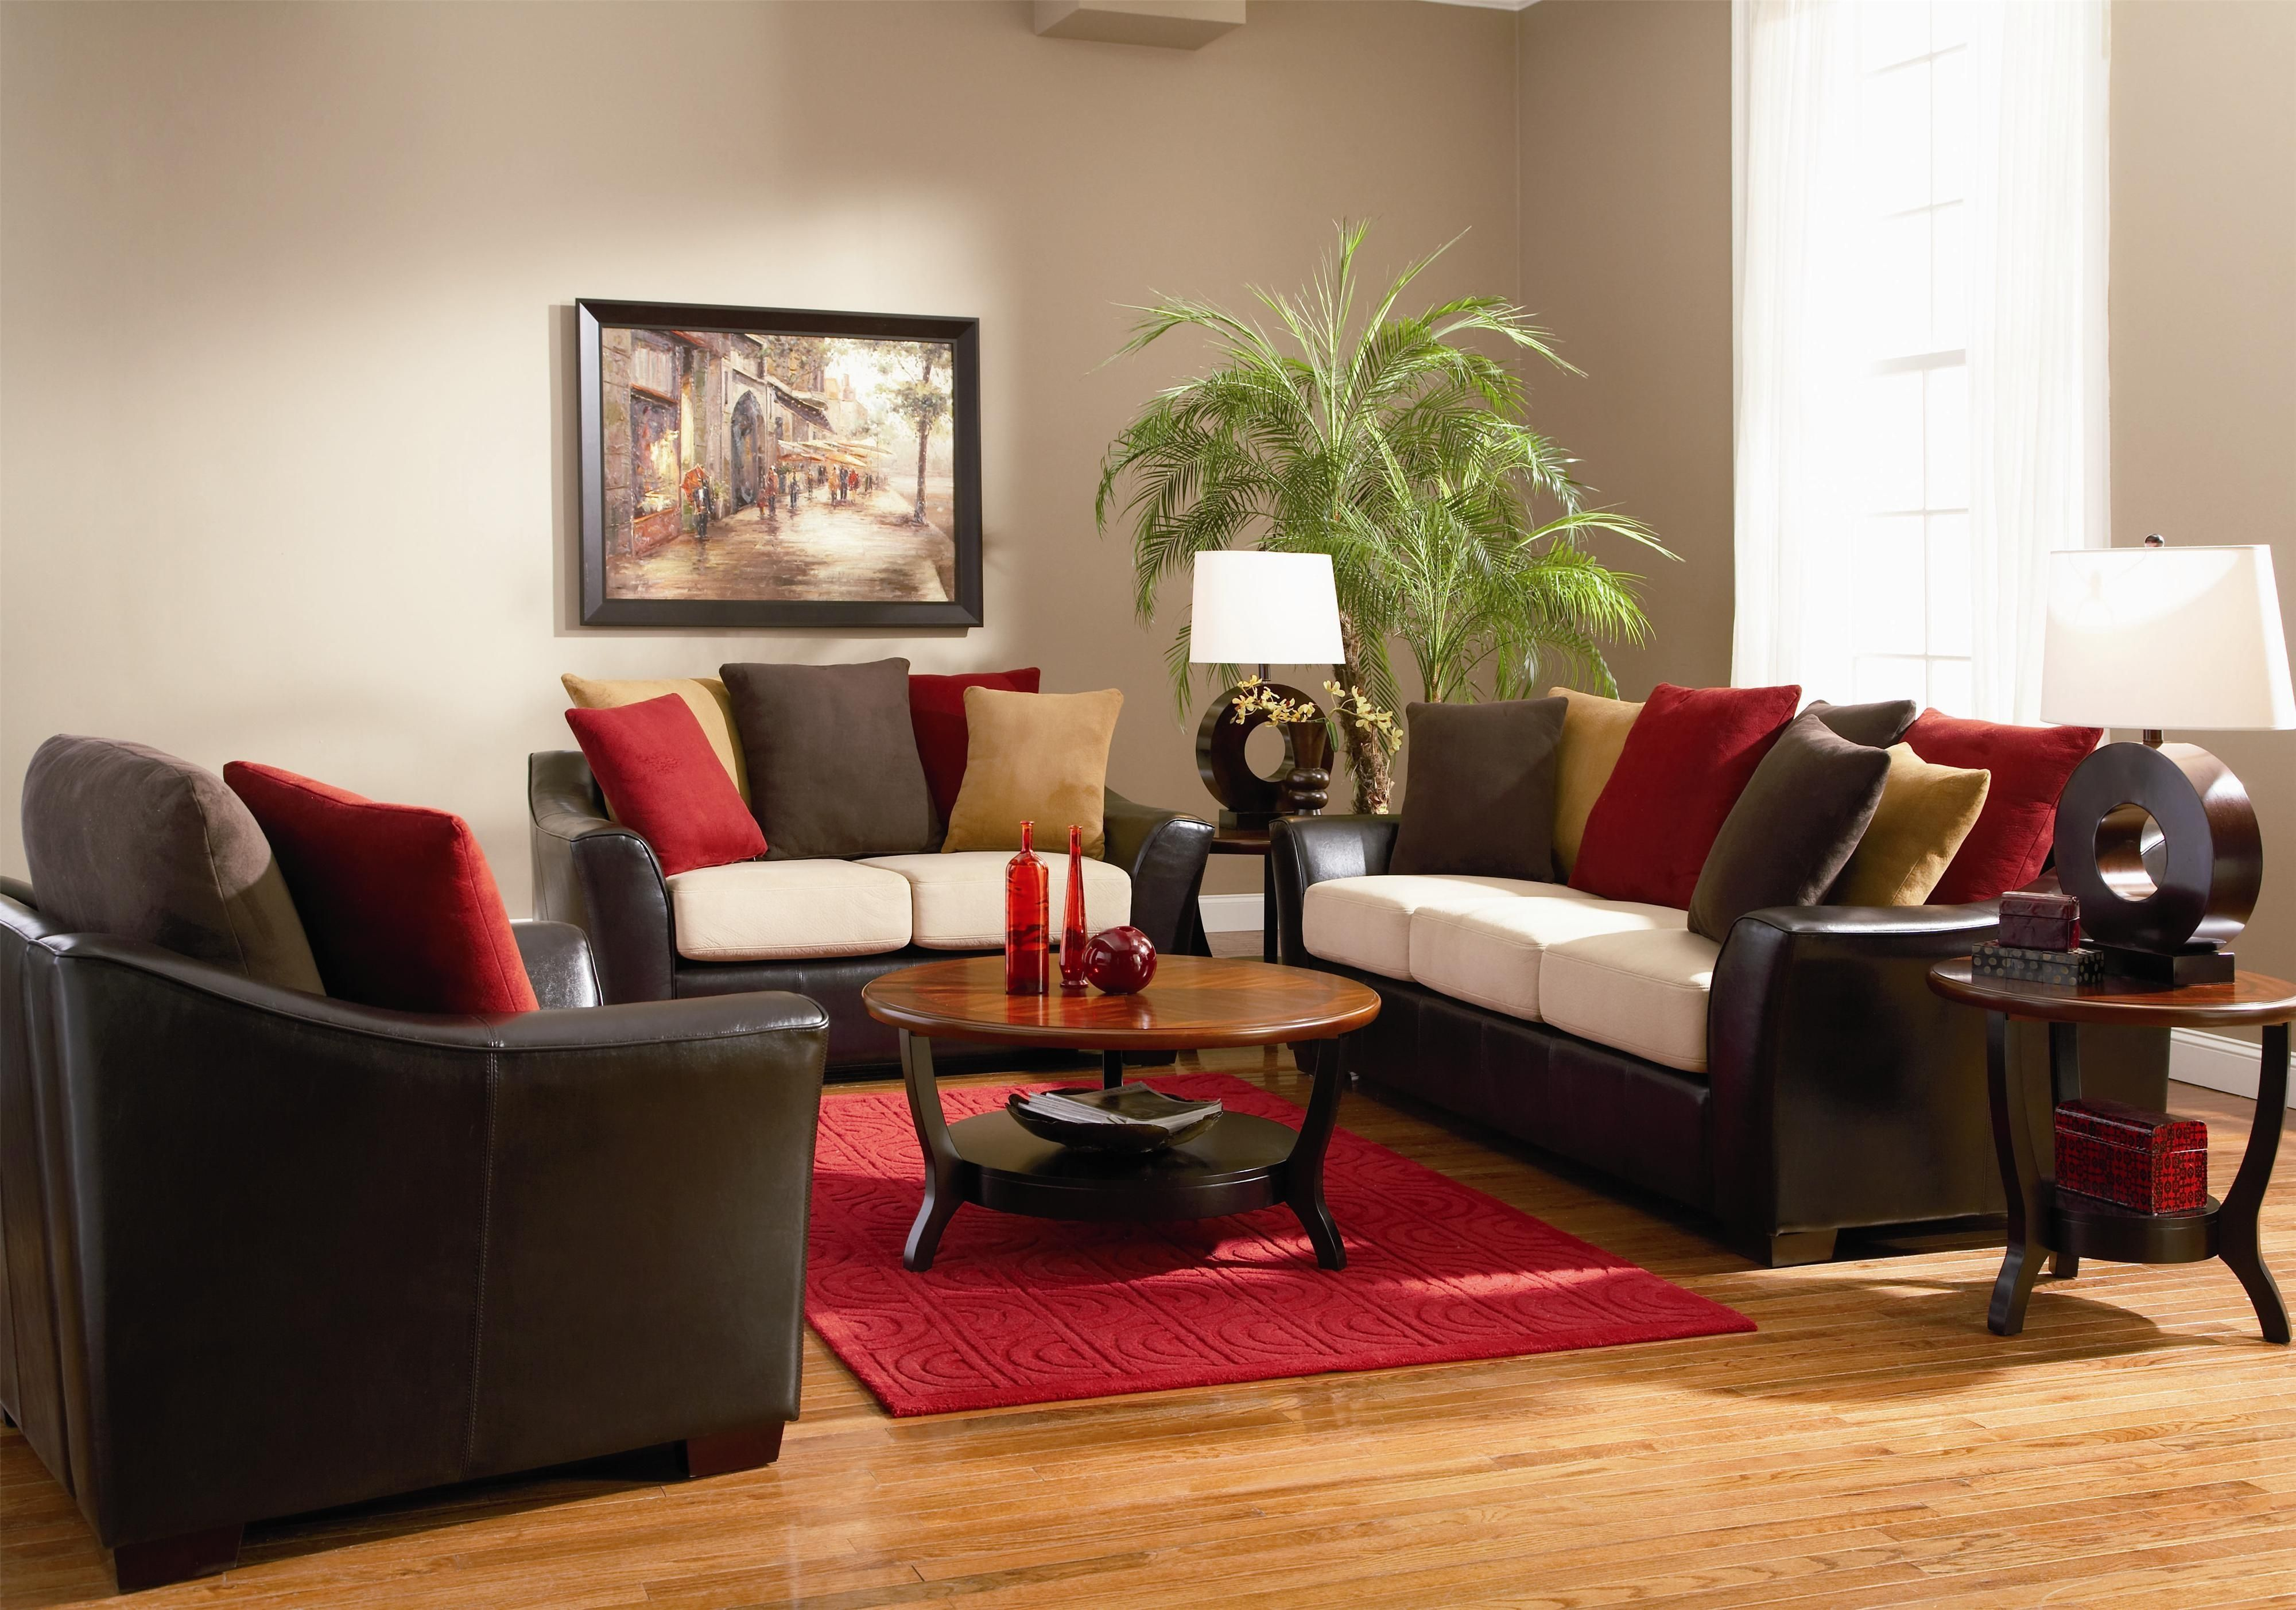 Elegant Image Of Living Room Colors With Brown Couch Ideasliving Room Colors With Brown Couch Ideas Painting Of Color Your Living Room With Aw Burgundy Living Room Brown Couch Decor Brown